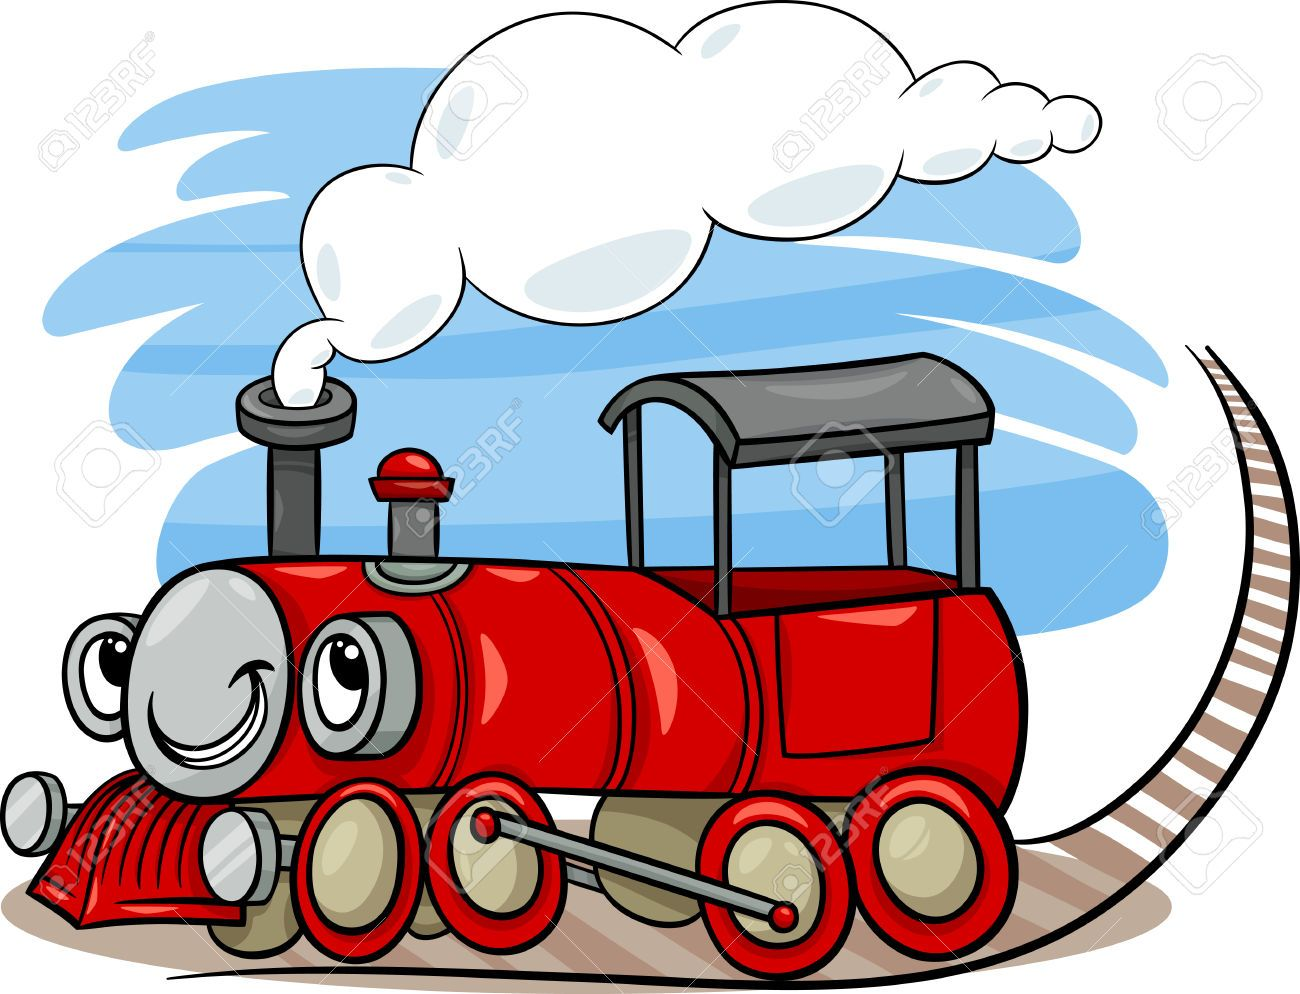 Image result for cartoon steam trains